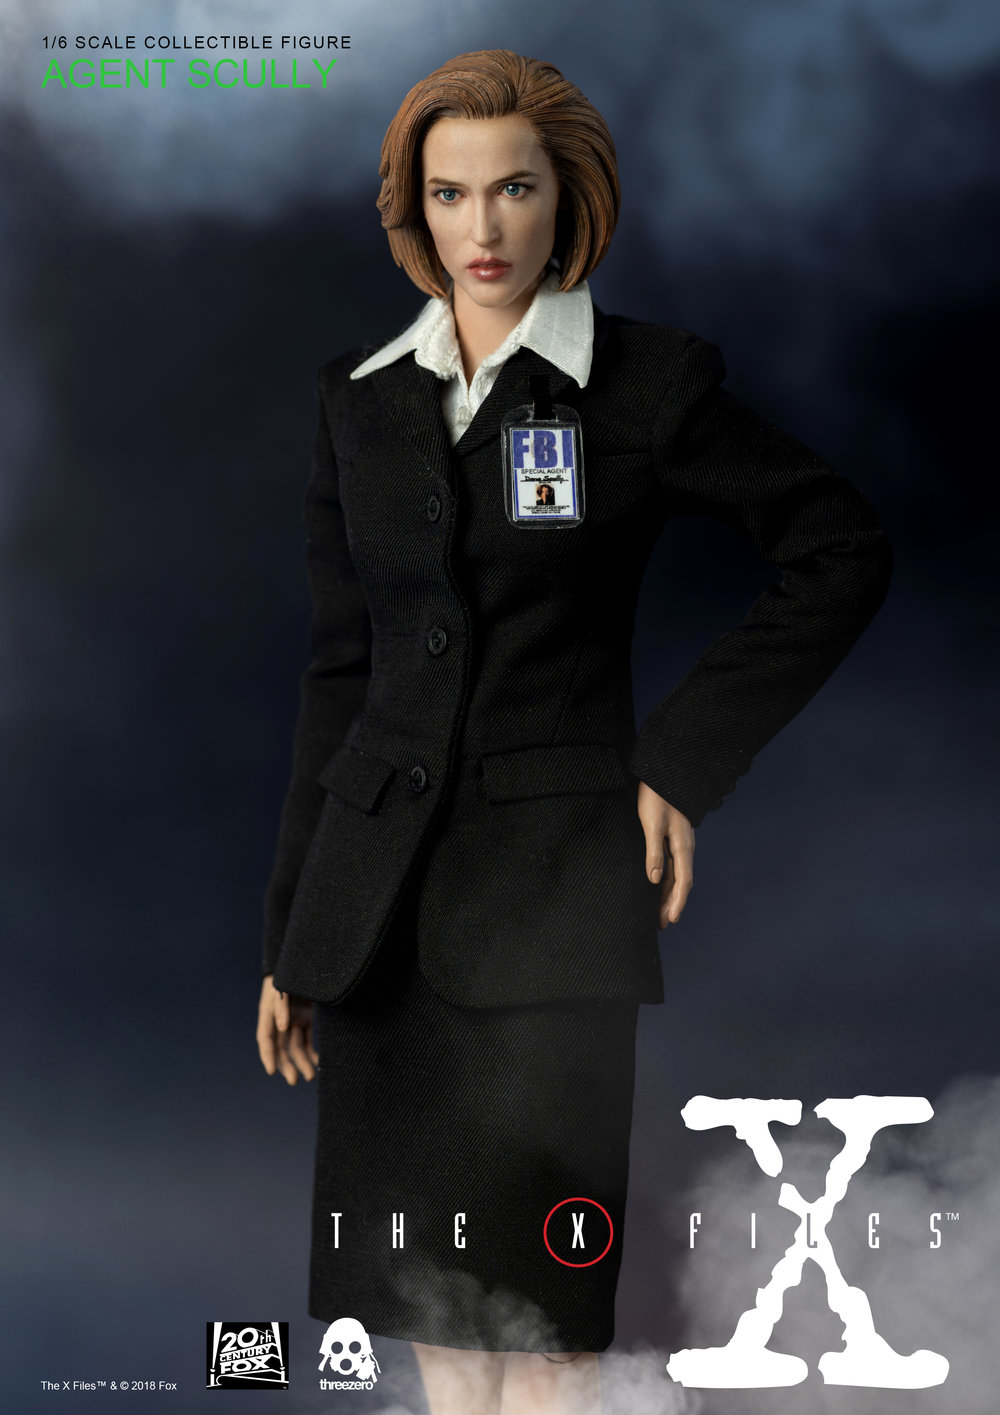 Xfile_Scully_00402.jpg